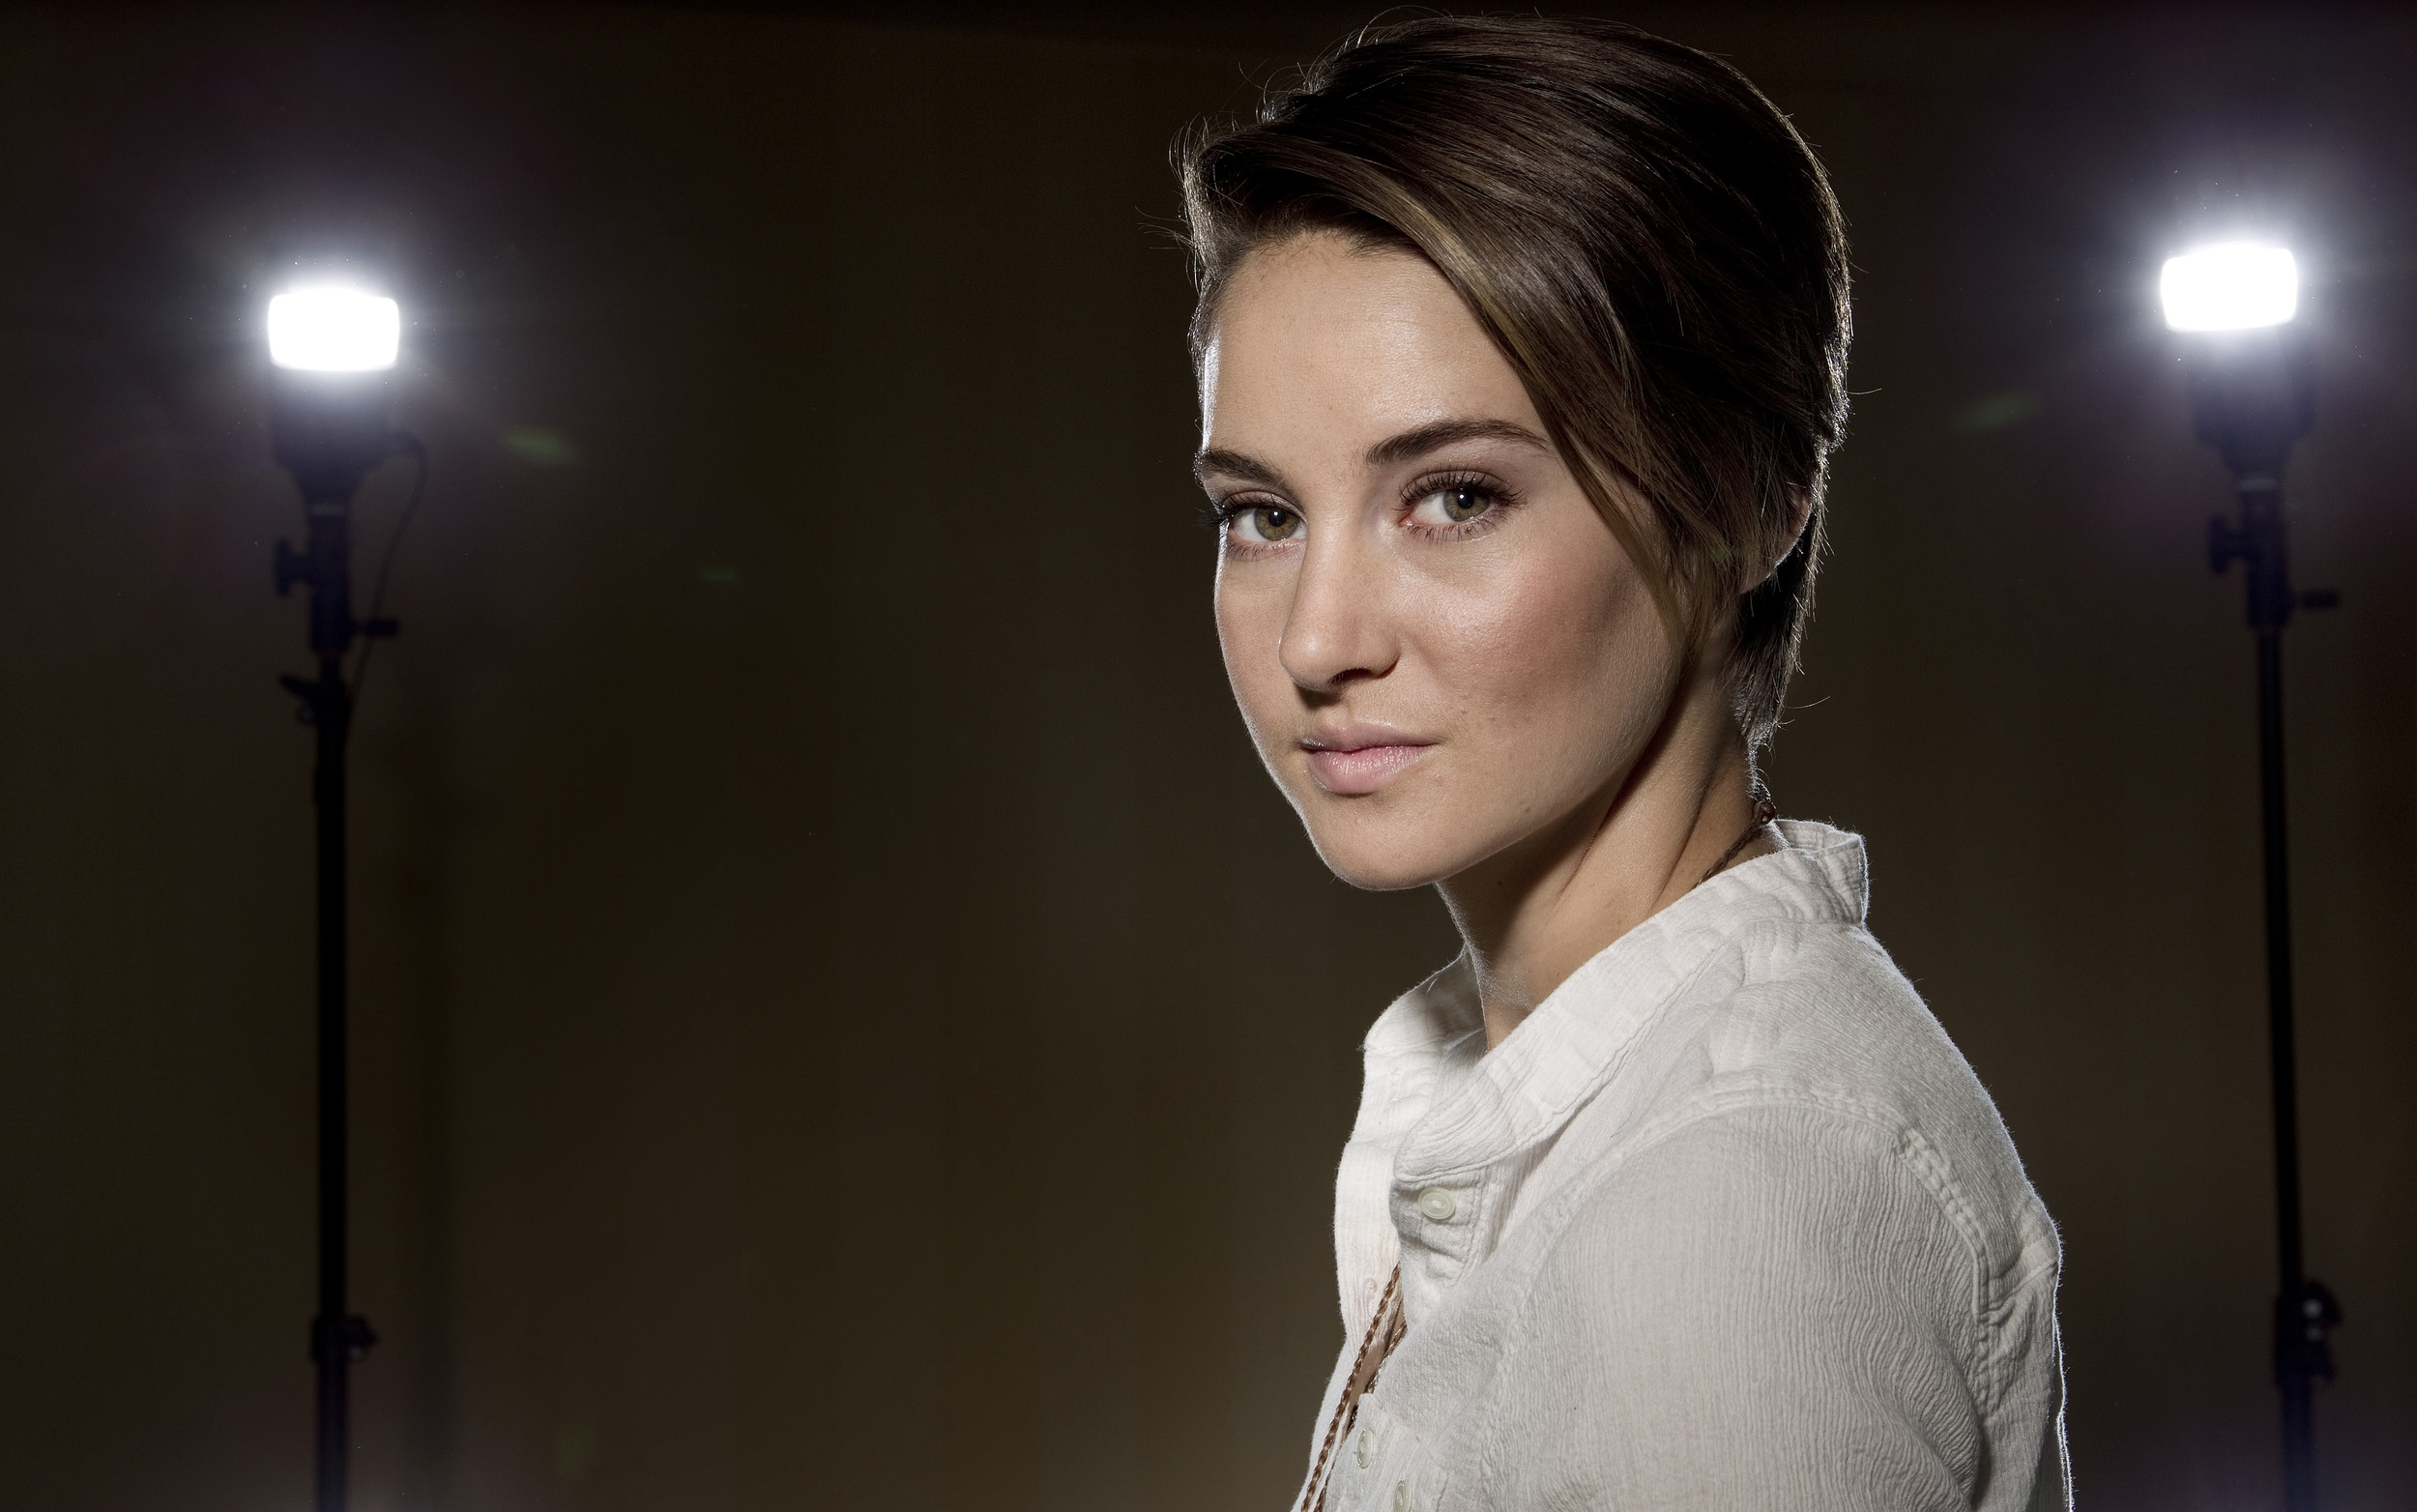 Actress Shailene Woodley backlit.